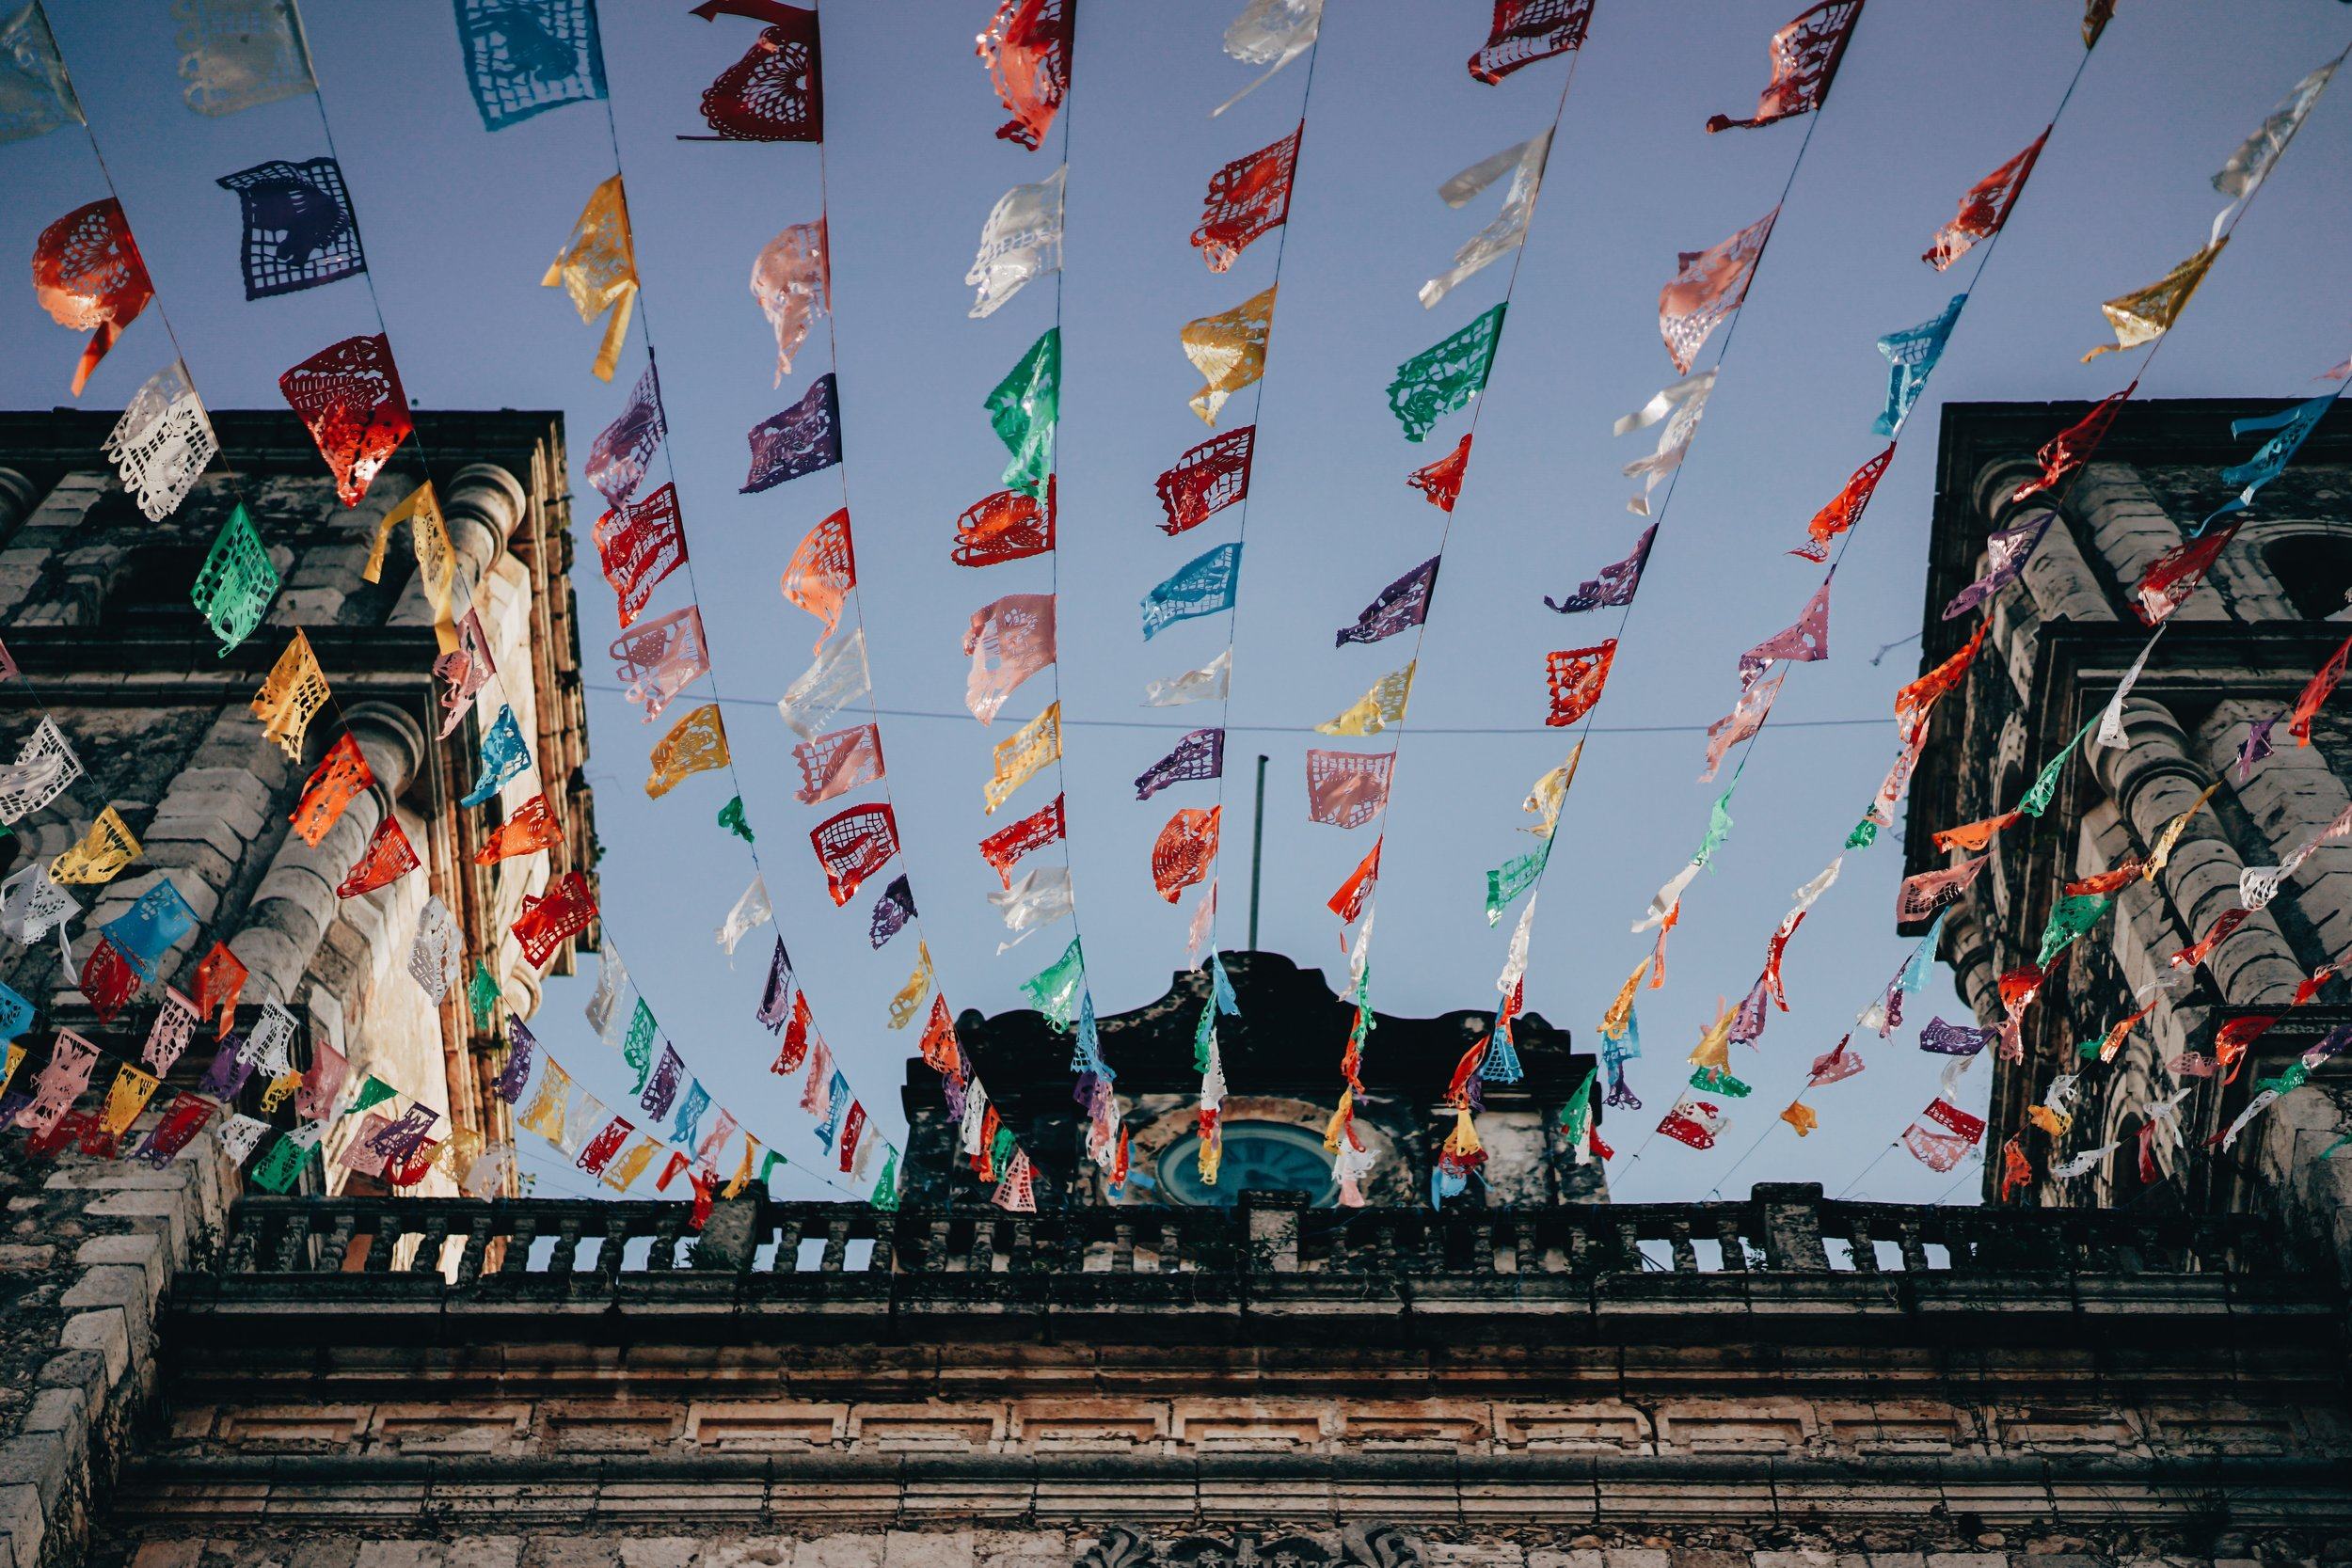 Colorful Mexican flags